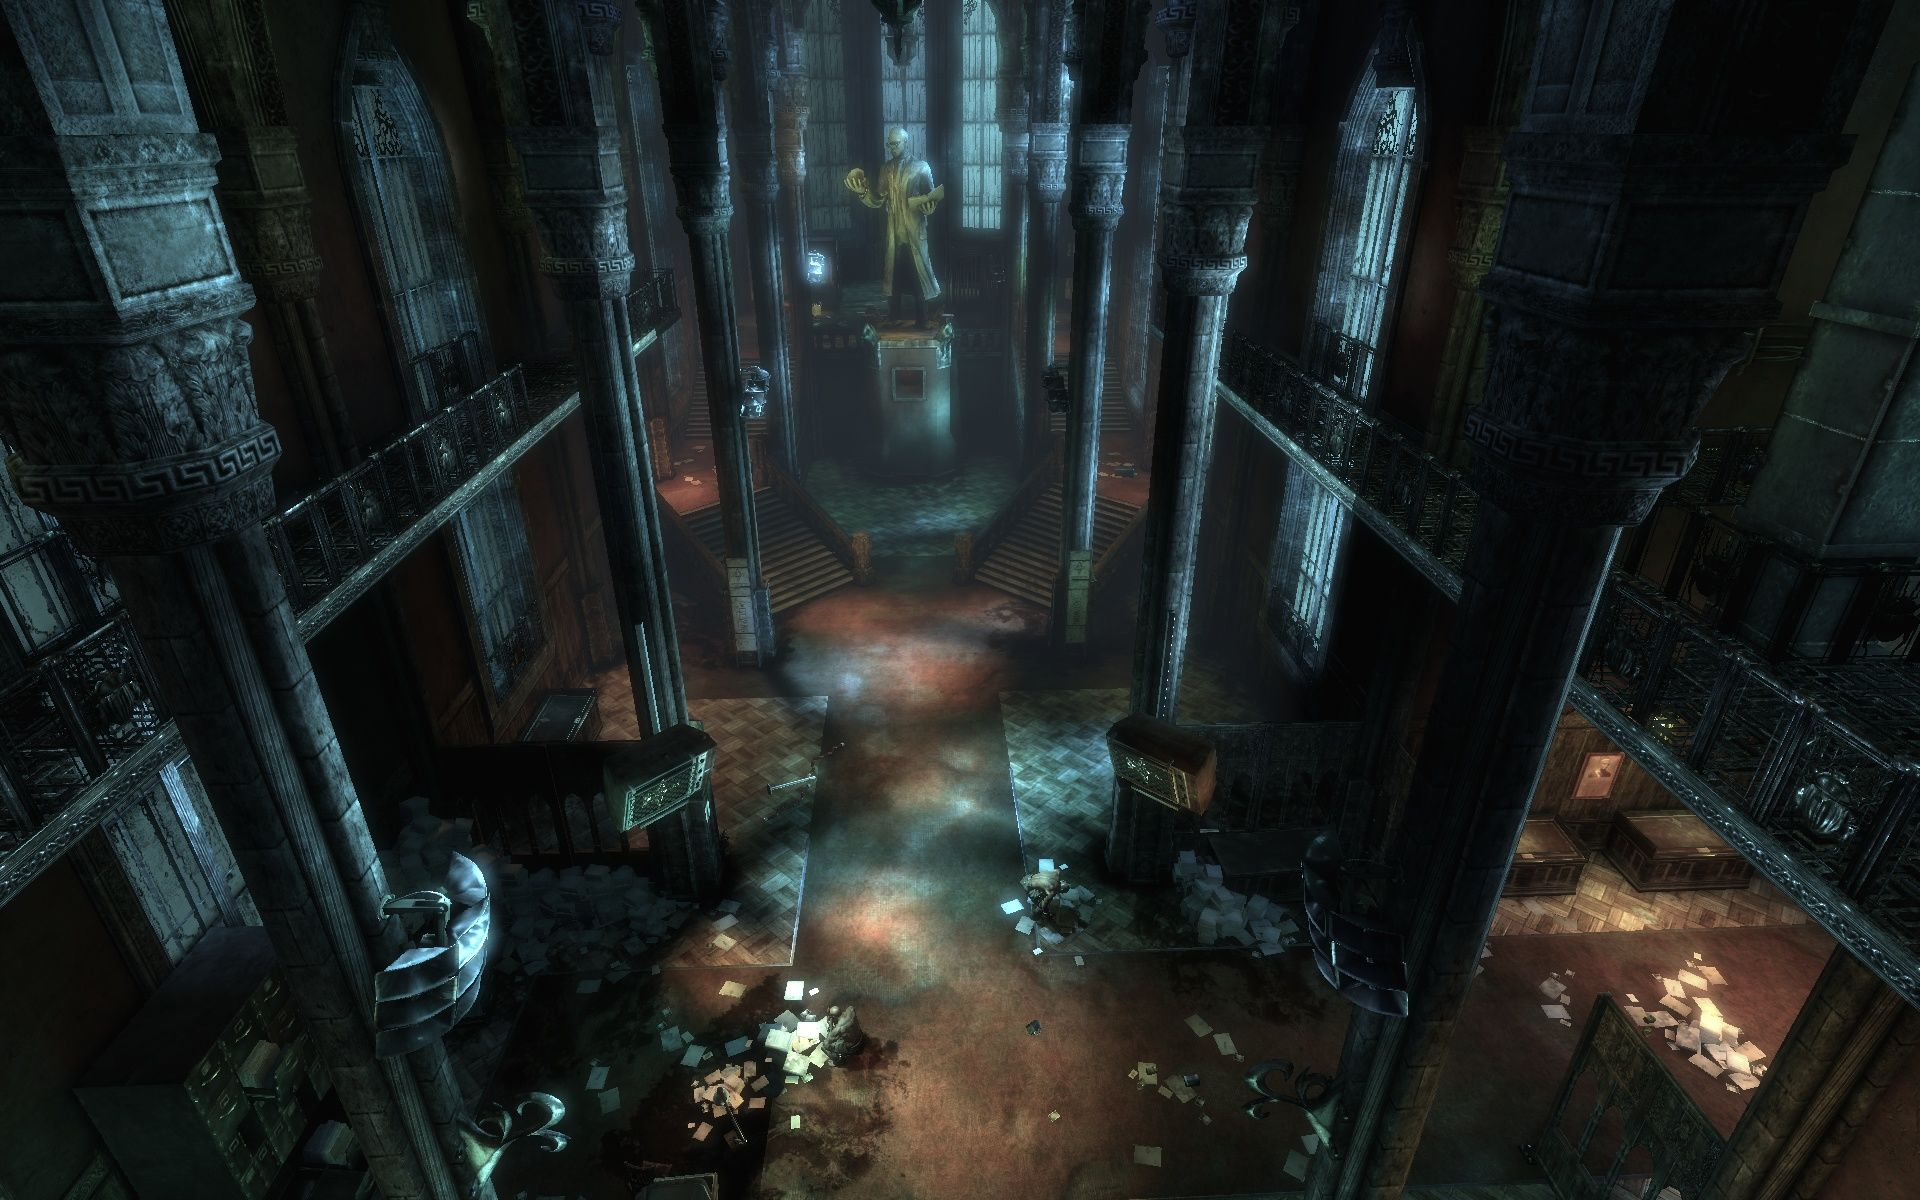 Batman: Arkham Asylum Windows Scene from the integrated Benchmark.